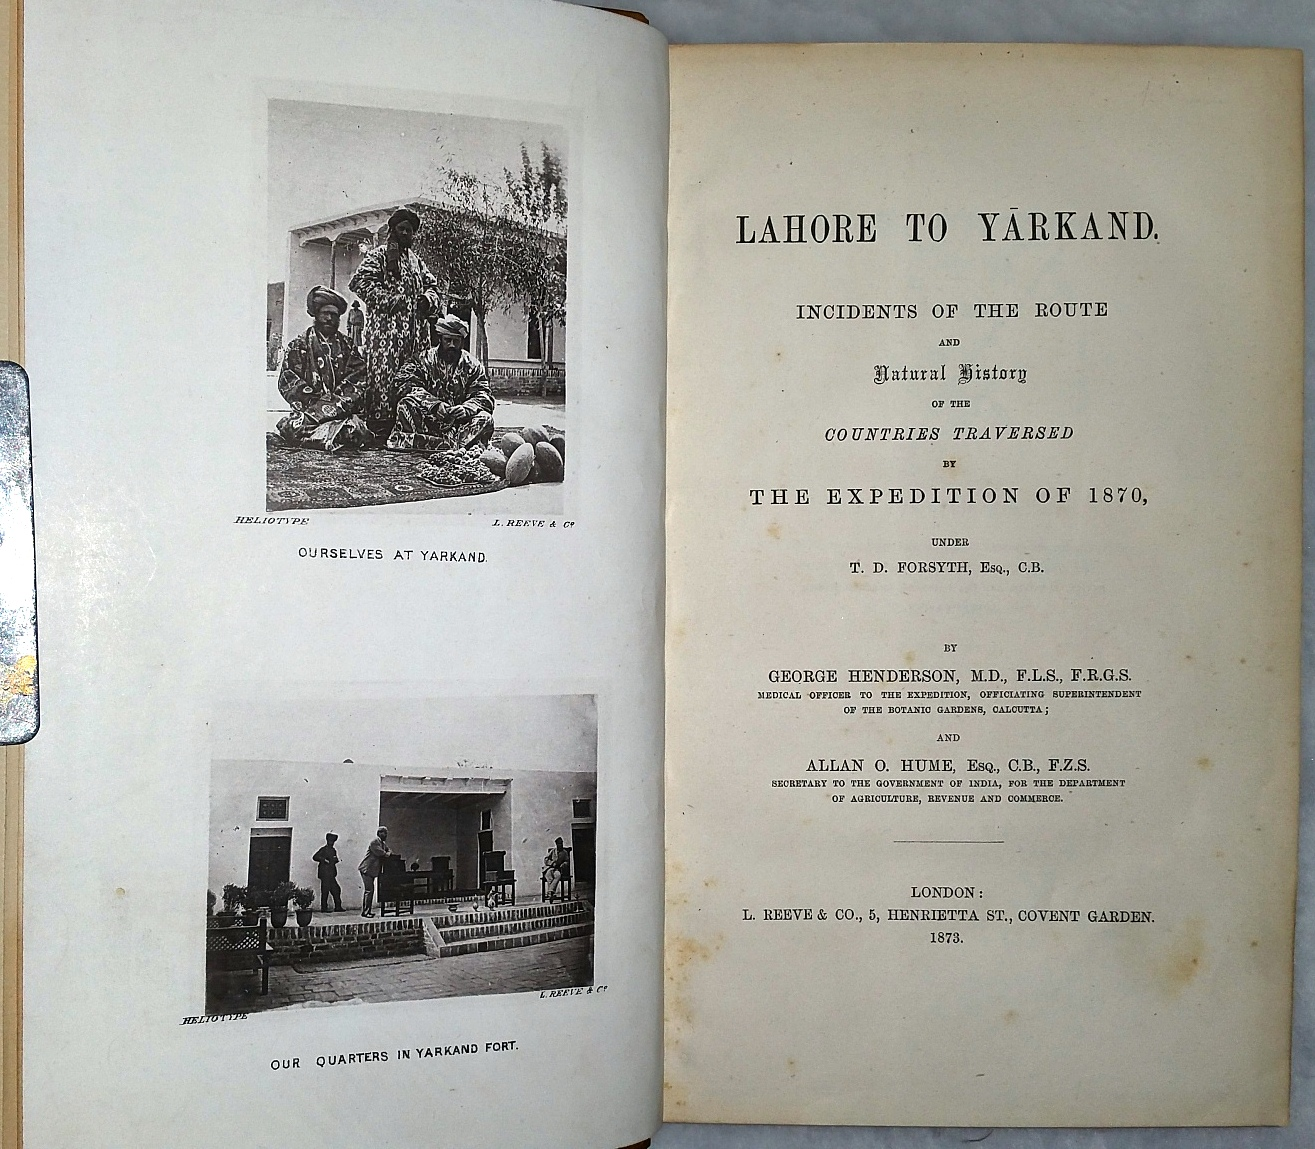 Image for Lahore to Yarkand.  Incidents of the Route and Natural History of the Countries Traversed By the Expedition of 1870, Under T. D. Forsyth, Esq., C.B.